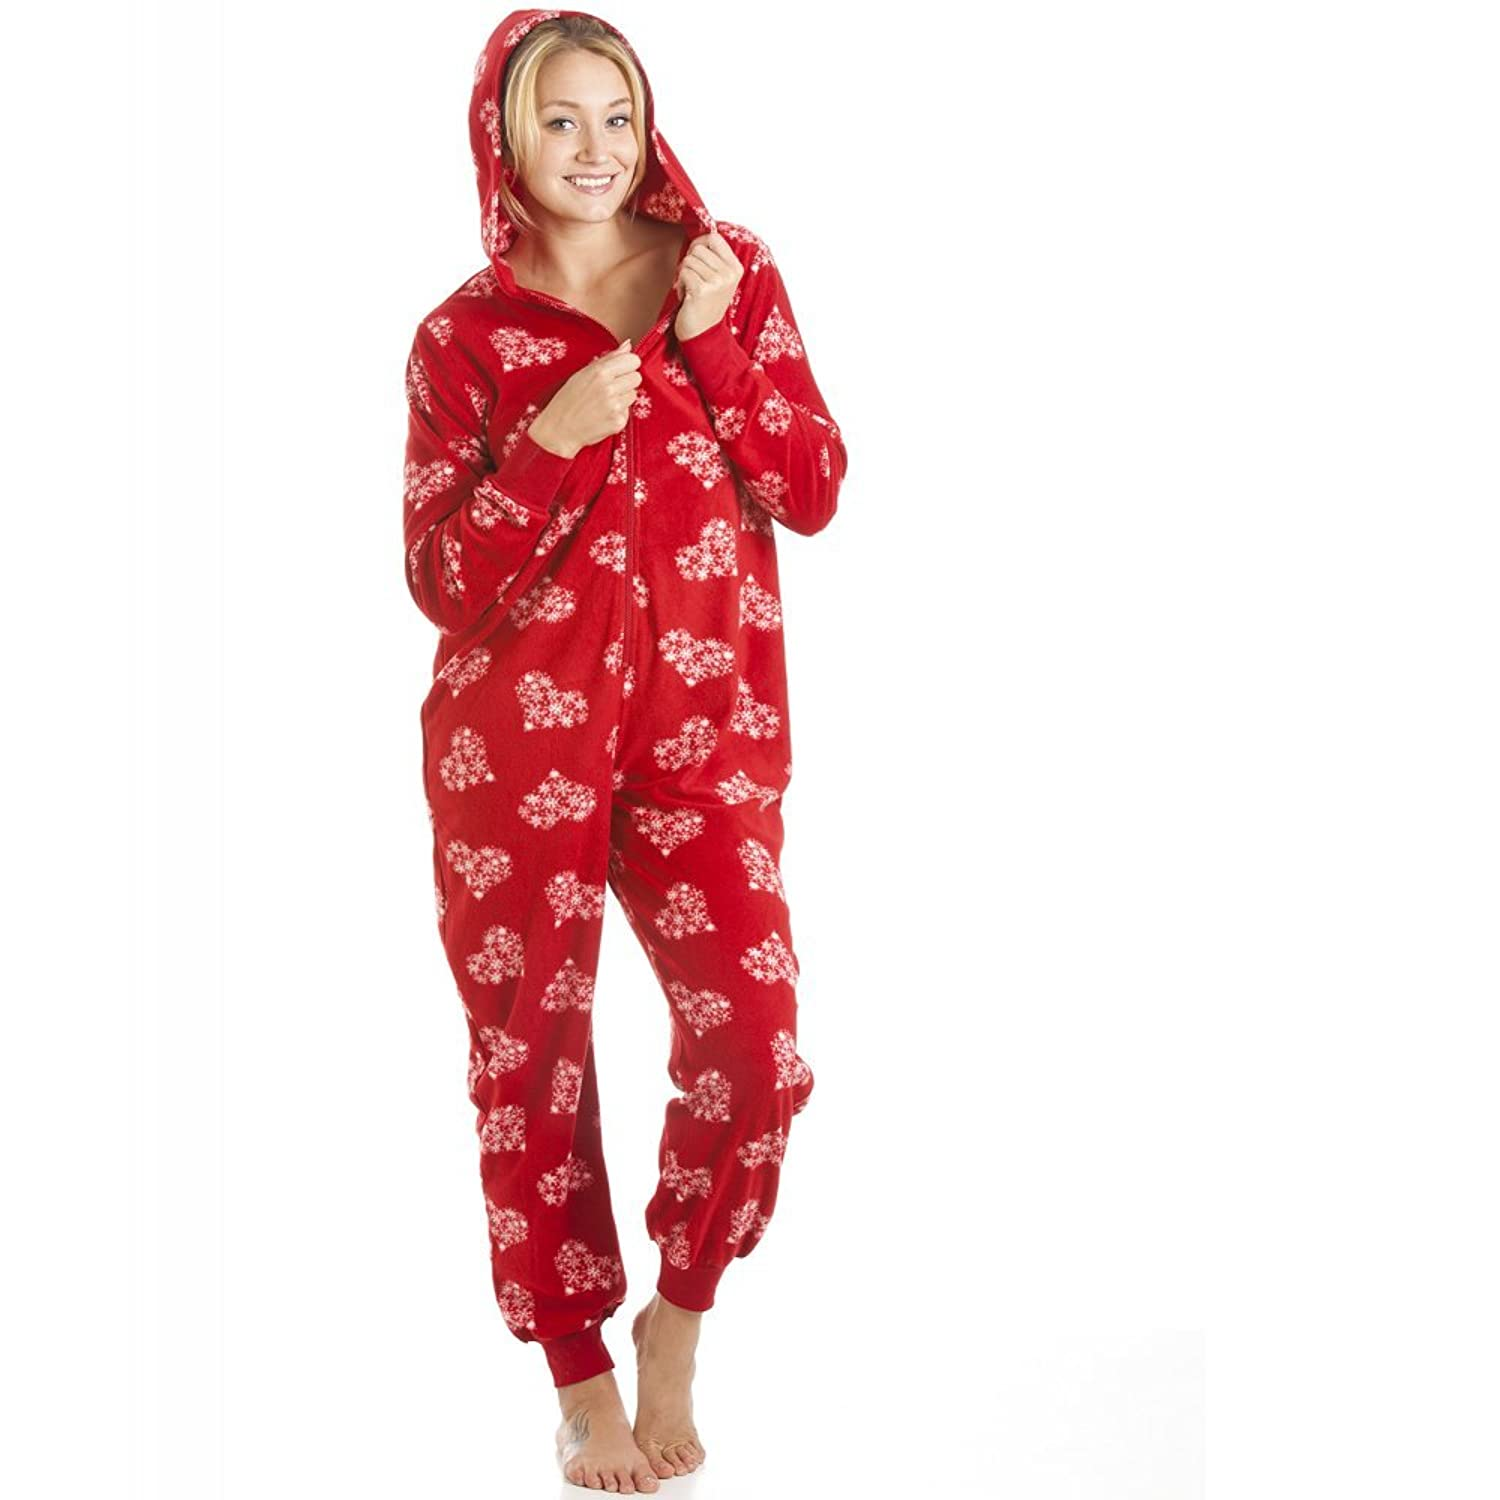 Camille Ladies Nightwear Supersoft Red And White Snowflake Love Heart All In One